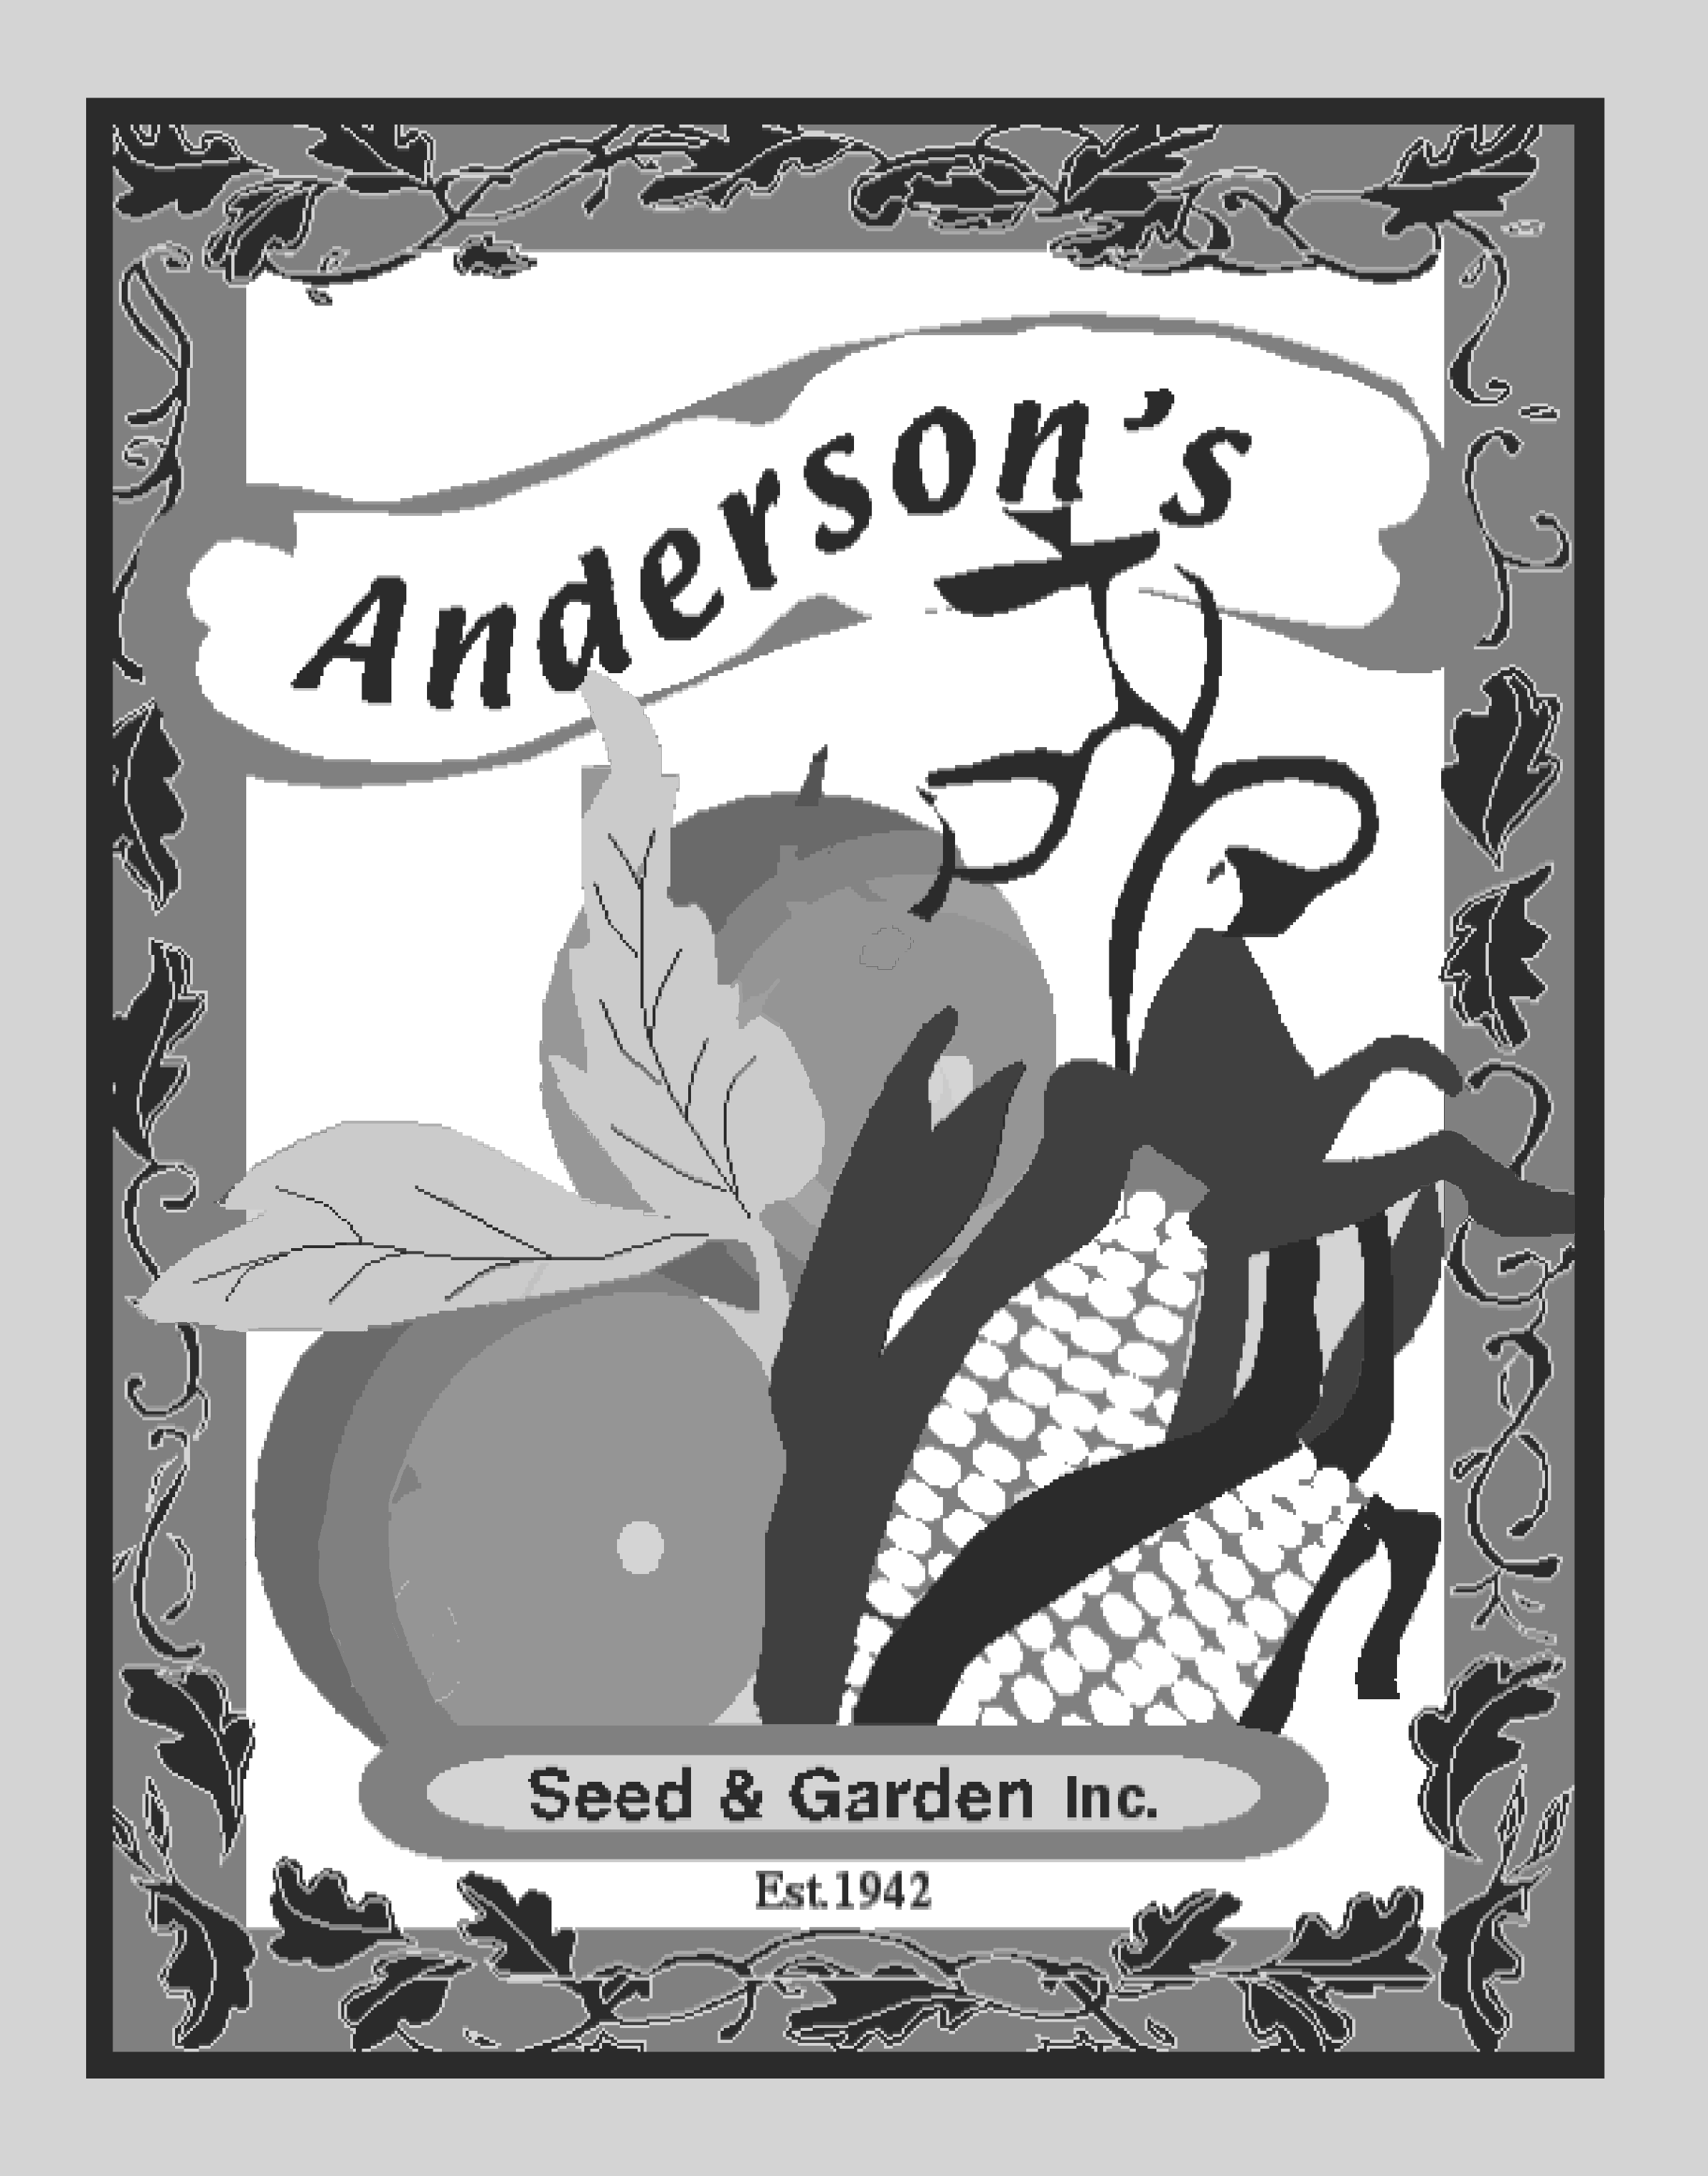 Oregon Sugar Pod II Heirloom Snow Pea Seed 1 lb.